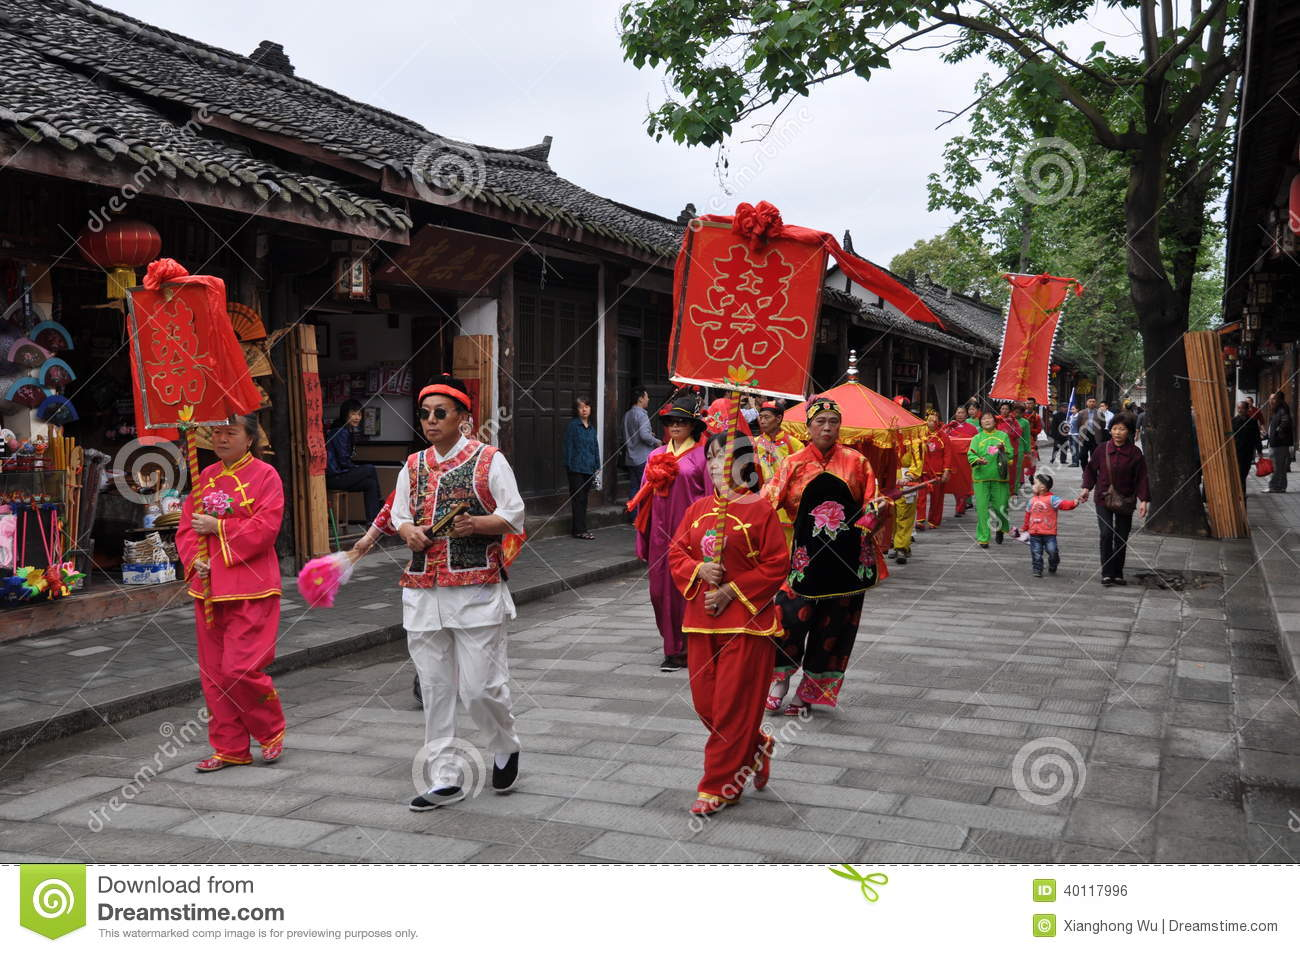 a traditional china wedding essay For a brief introduction to chinese marriage traditions photos or videos are taken as part of the wedding ceremony in china choose traditional.